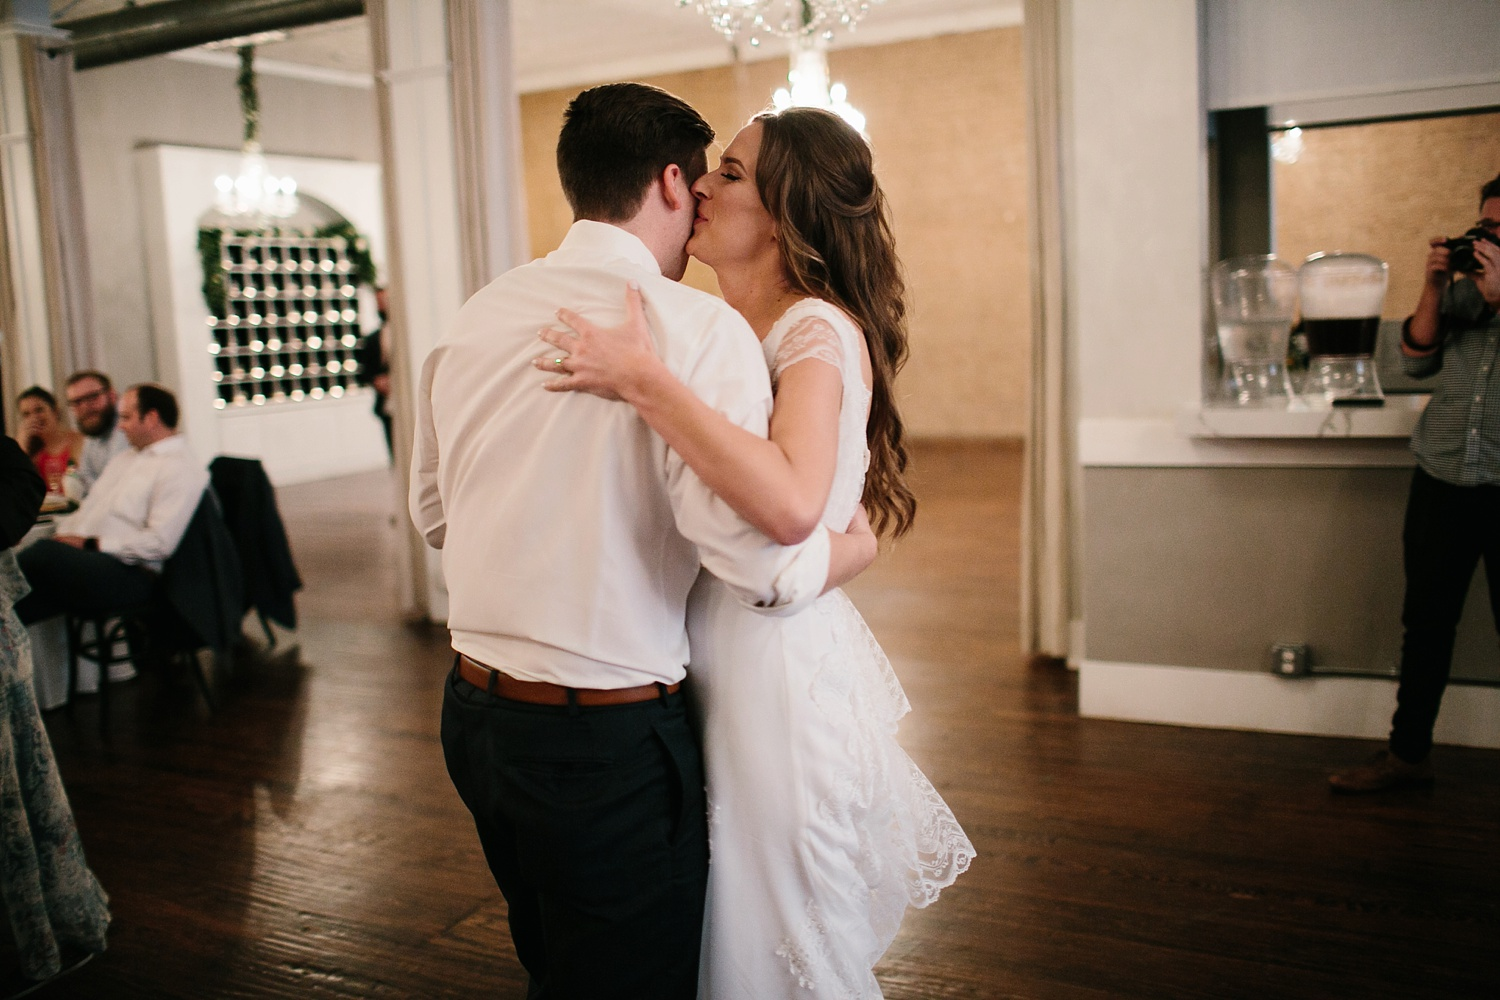 Amber + Daniel an intimate, simple, spring ceremony at Heard Craig Center and reception at Gather in McKinney, Texas by North Texas Wedding Photographer Rachel Meagan Photography 131